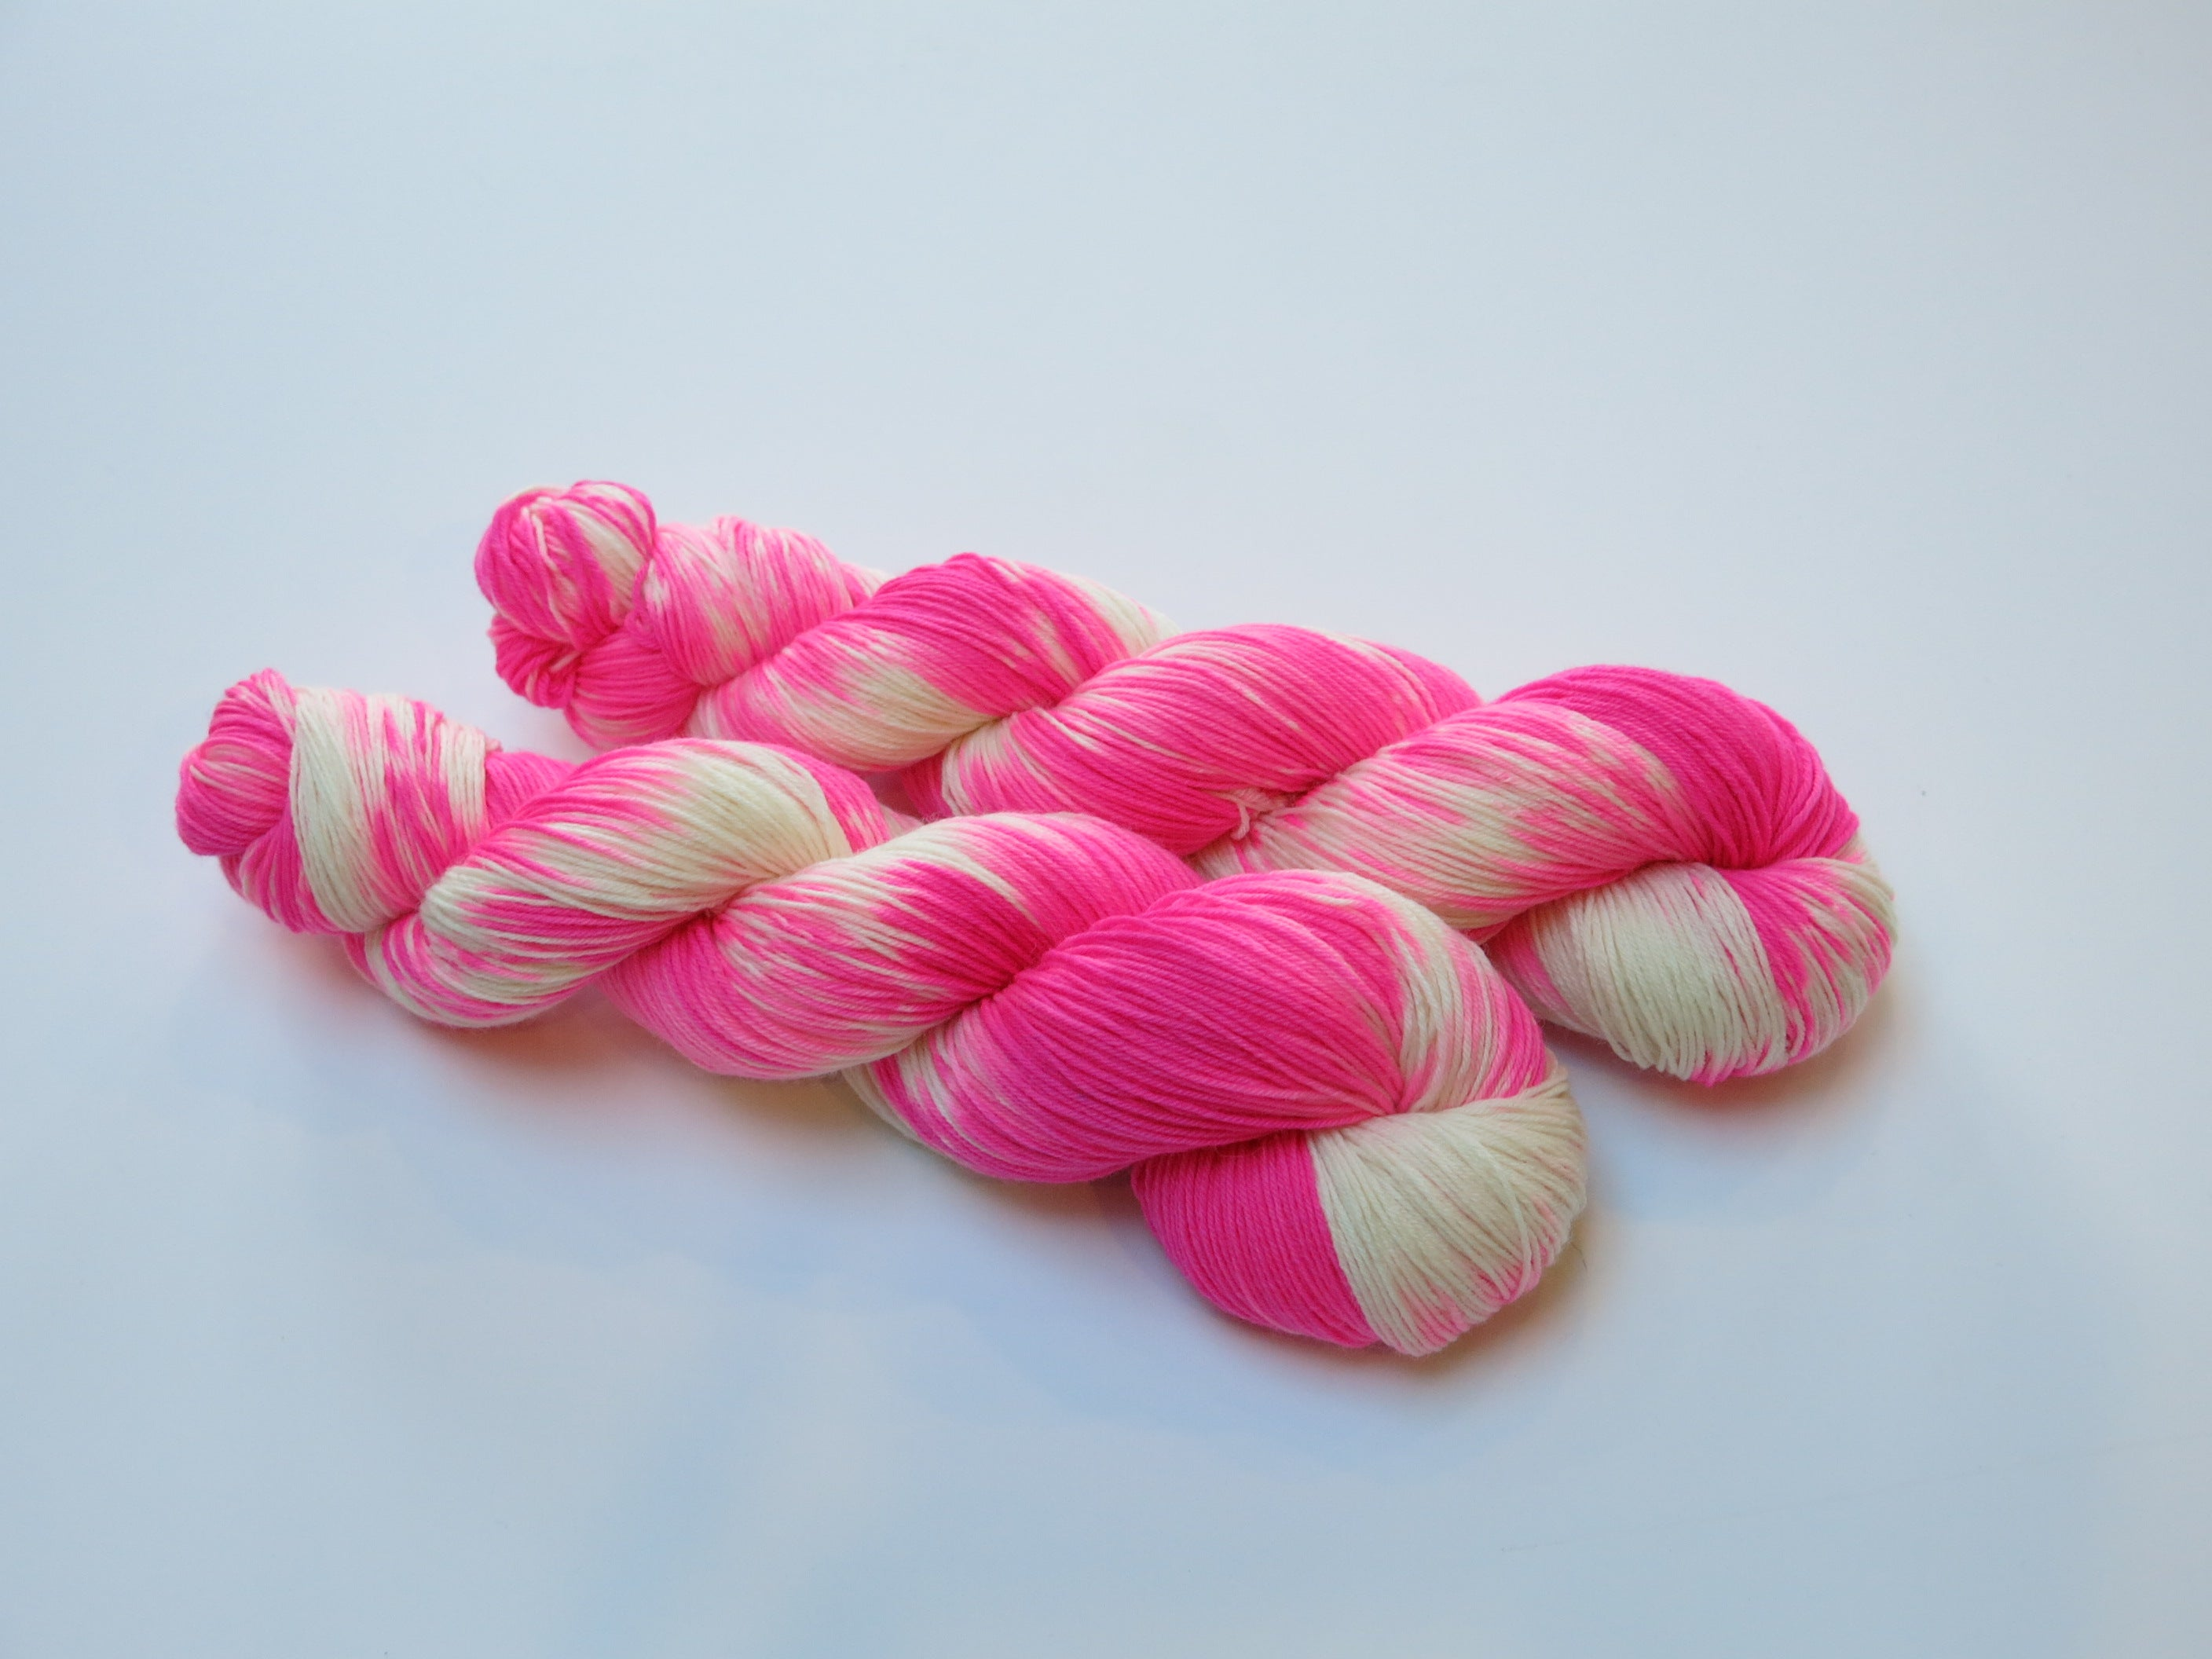 indie dyed uv reactive neon pink superwash merino sock yarn skein